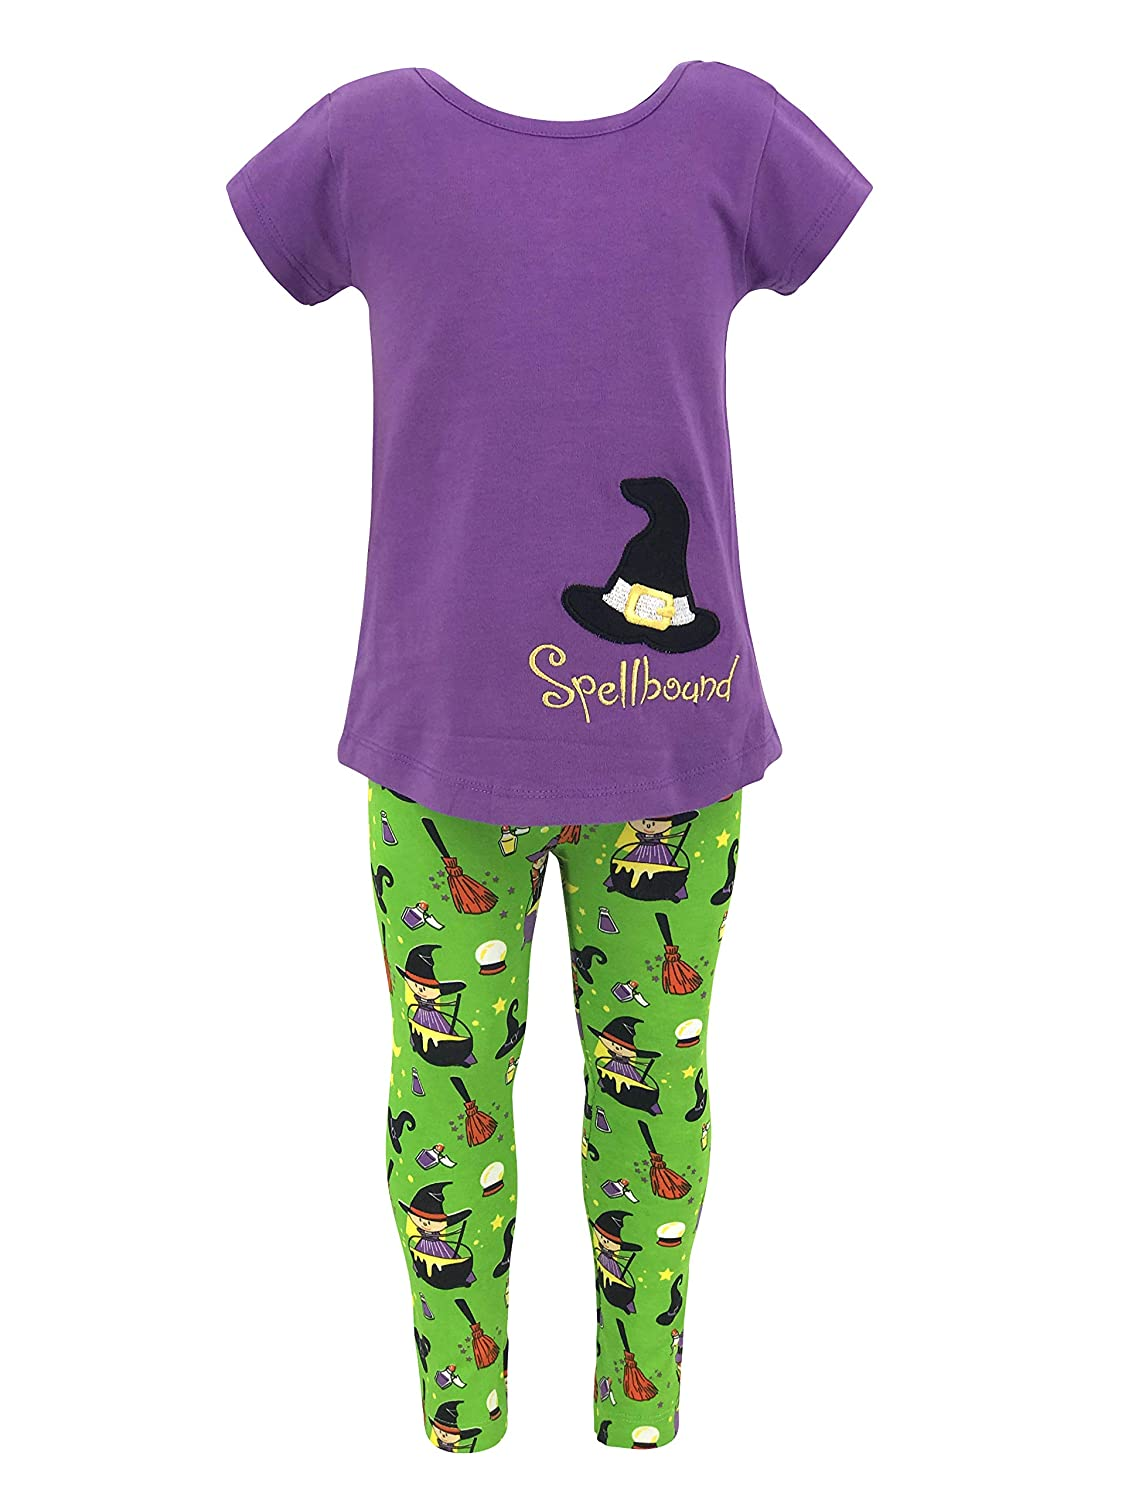 995138236e12f Amazon.com: Unique Baby Girls Spellbound Halloween Witch Shirt Legging  Outfit: Clothing